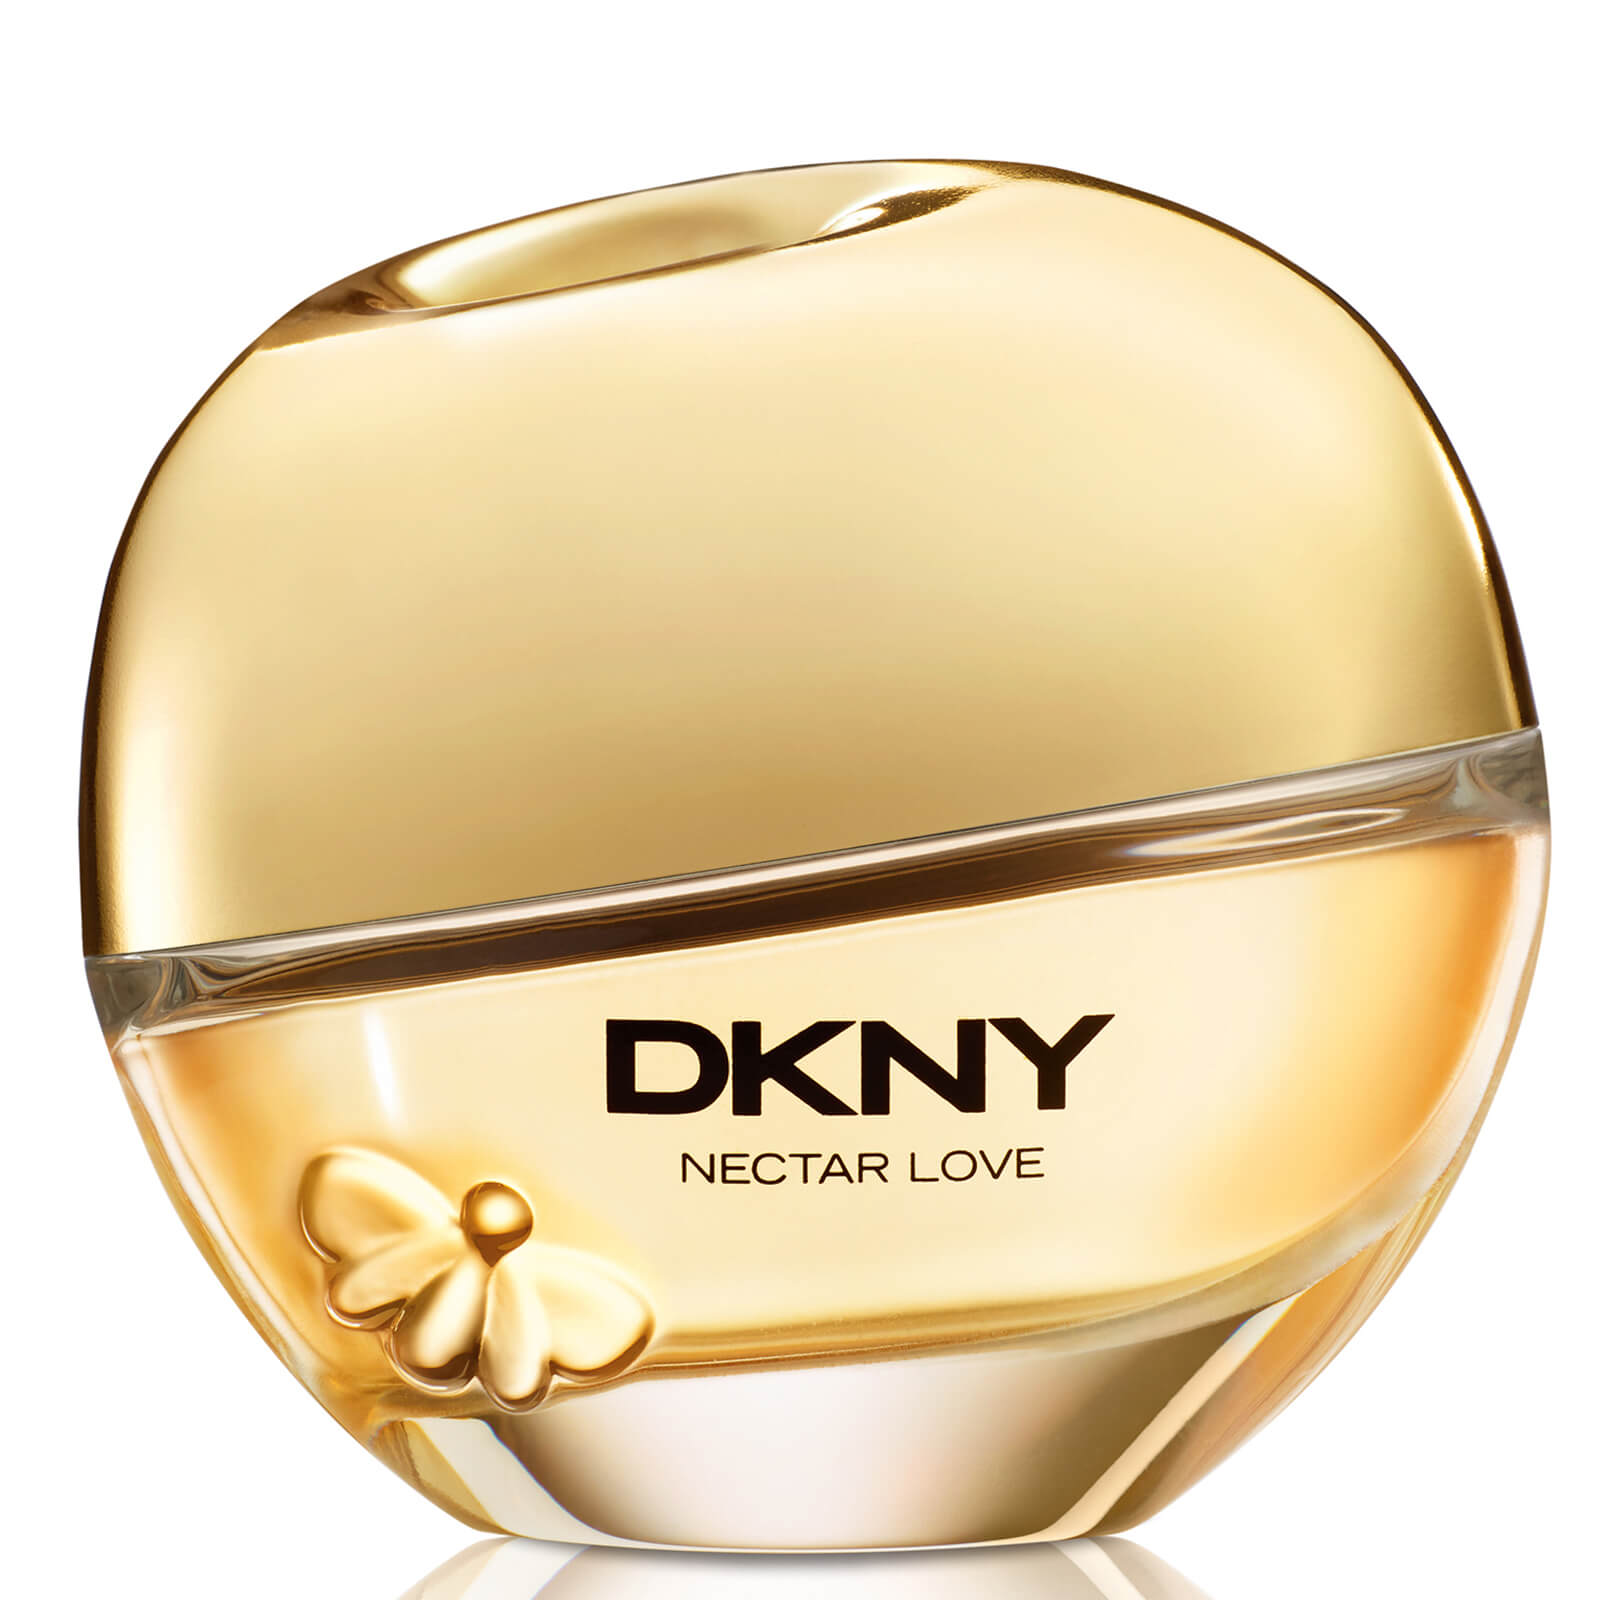 Dkny Nectar Love Eau De Parfum 30ml Free Shipping Lookfantastic